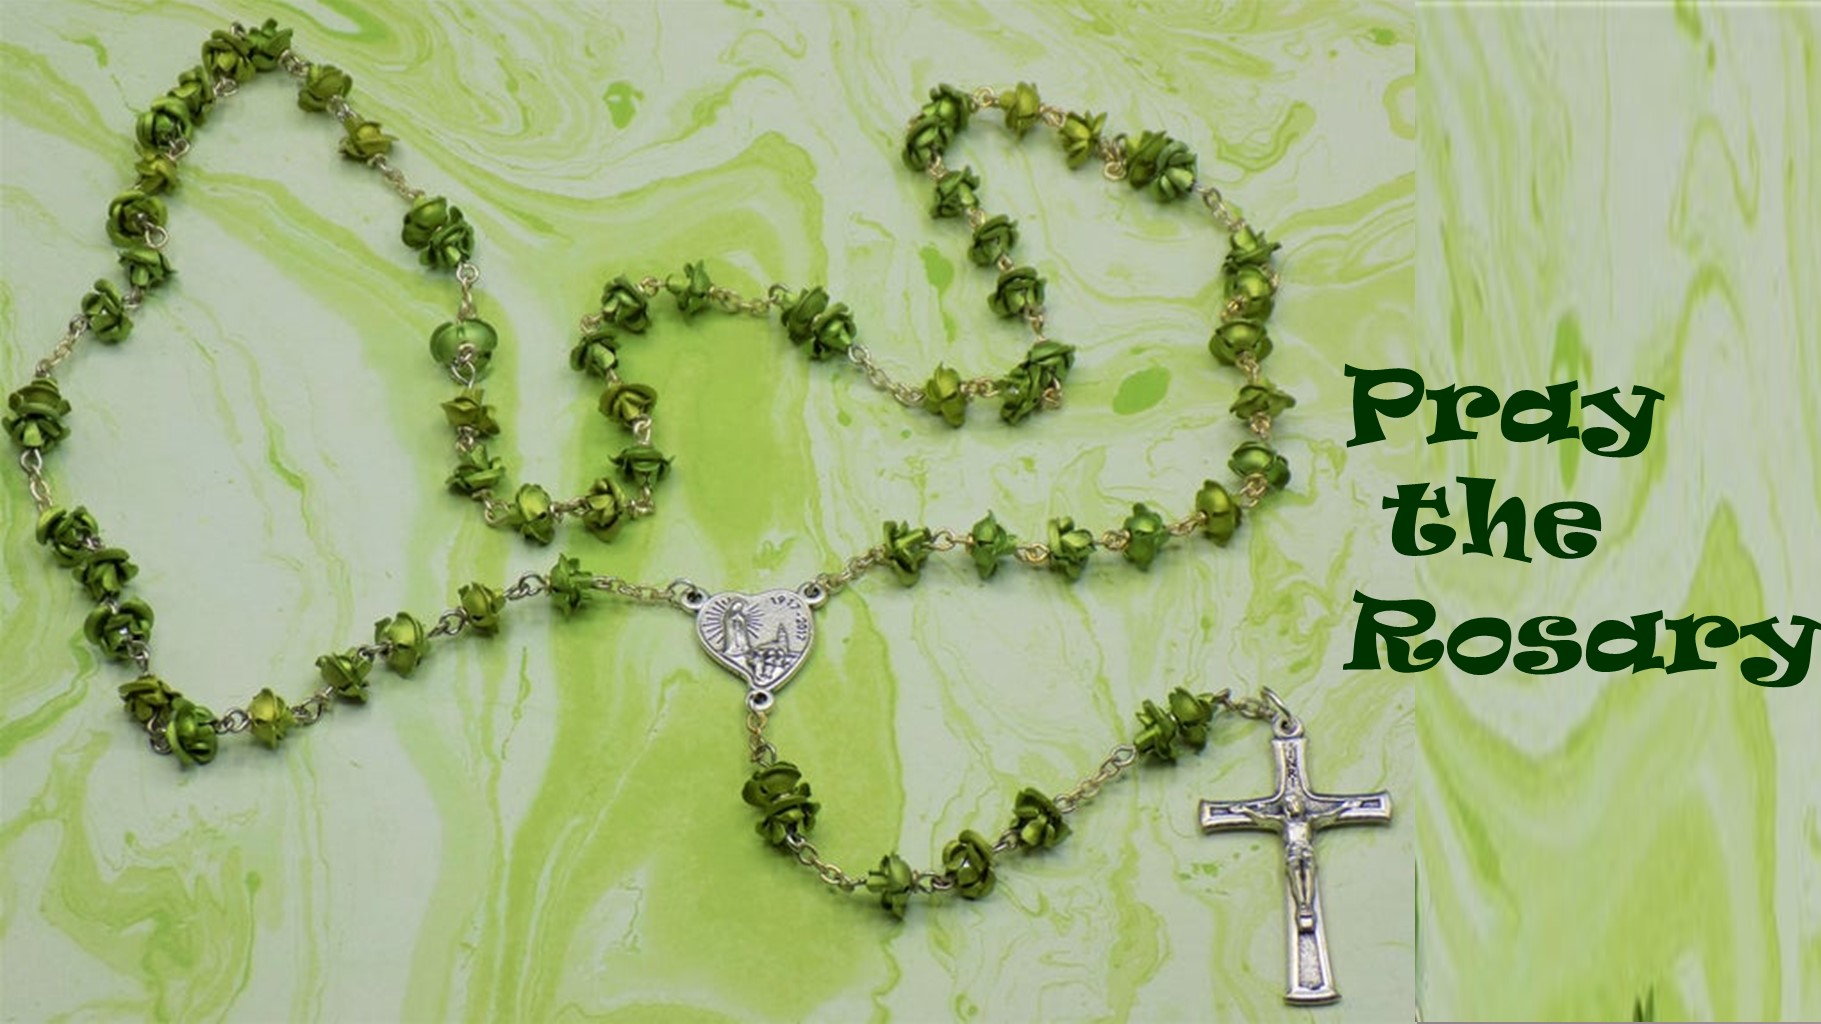 030820 Pray the Rosary